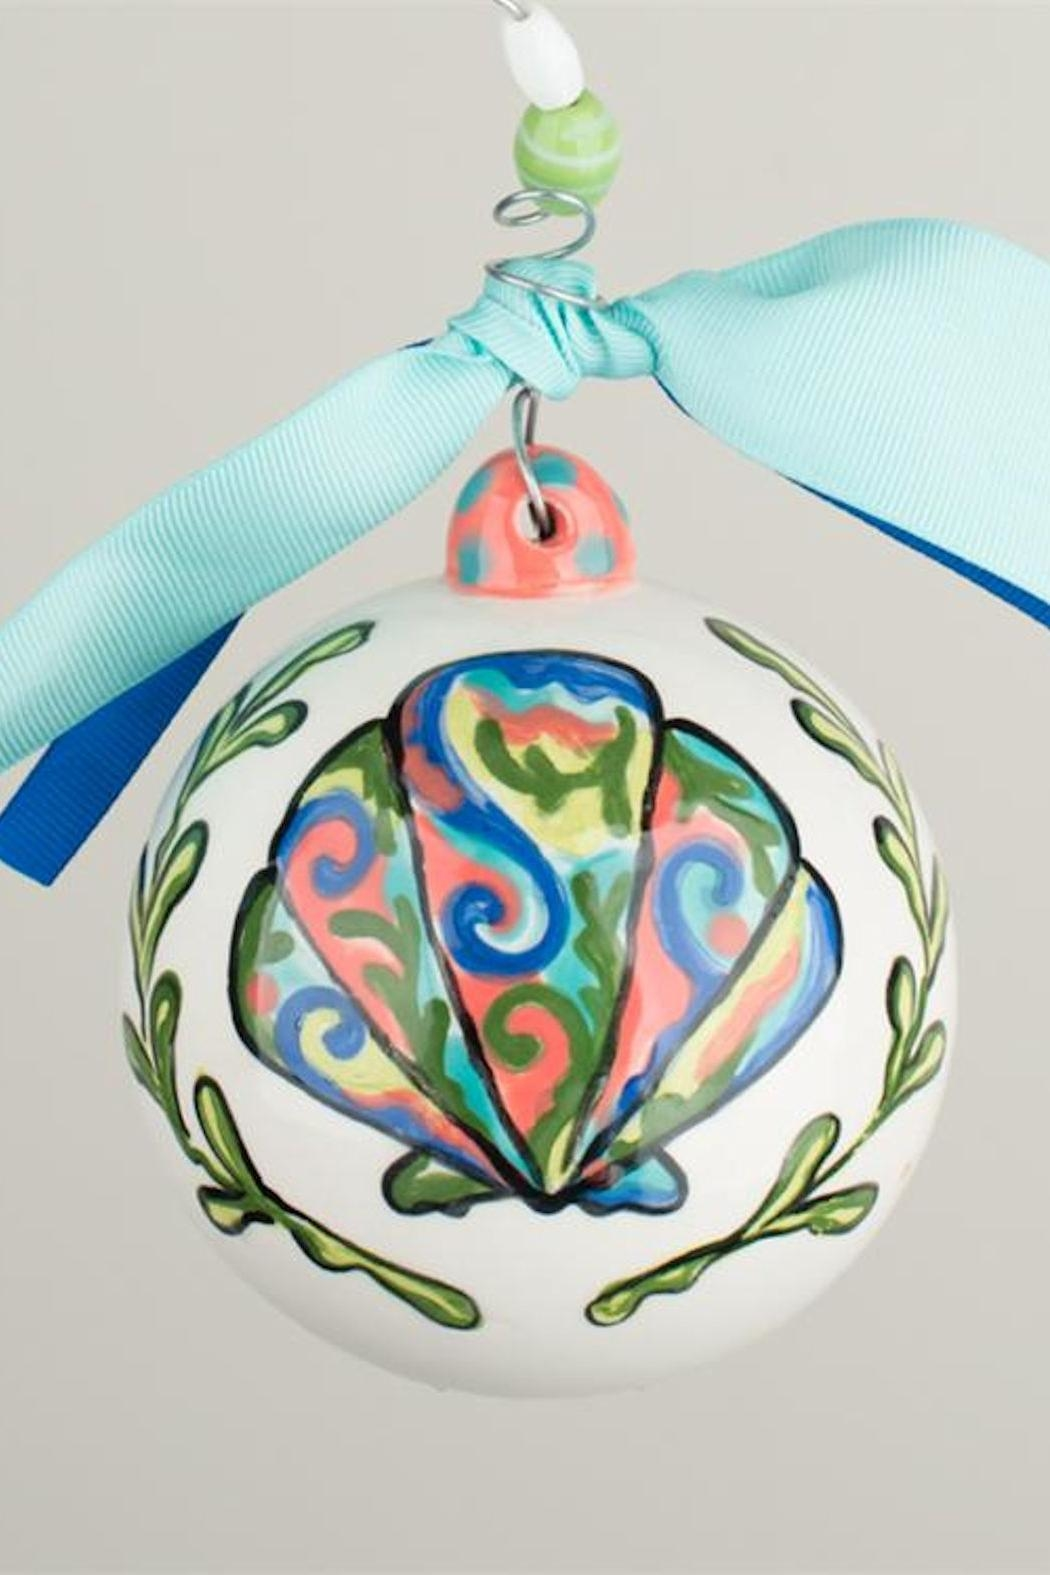 glory haus beachy christmas ornament front full image